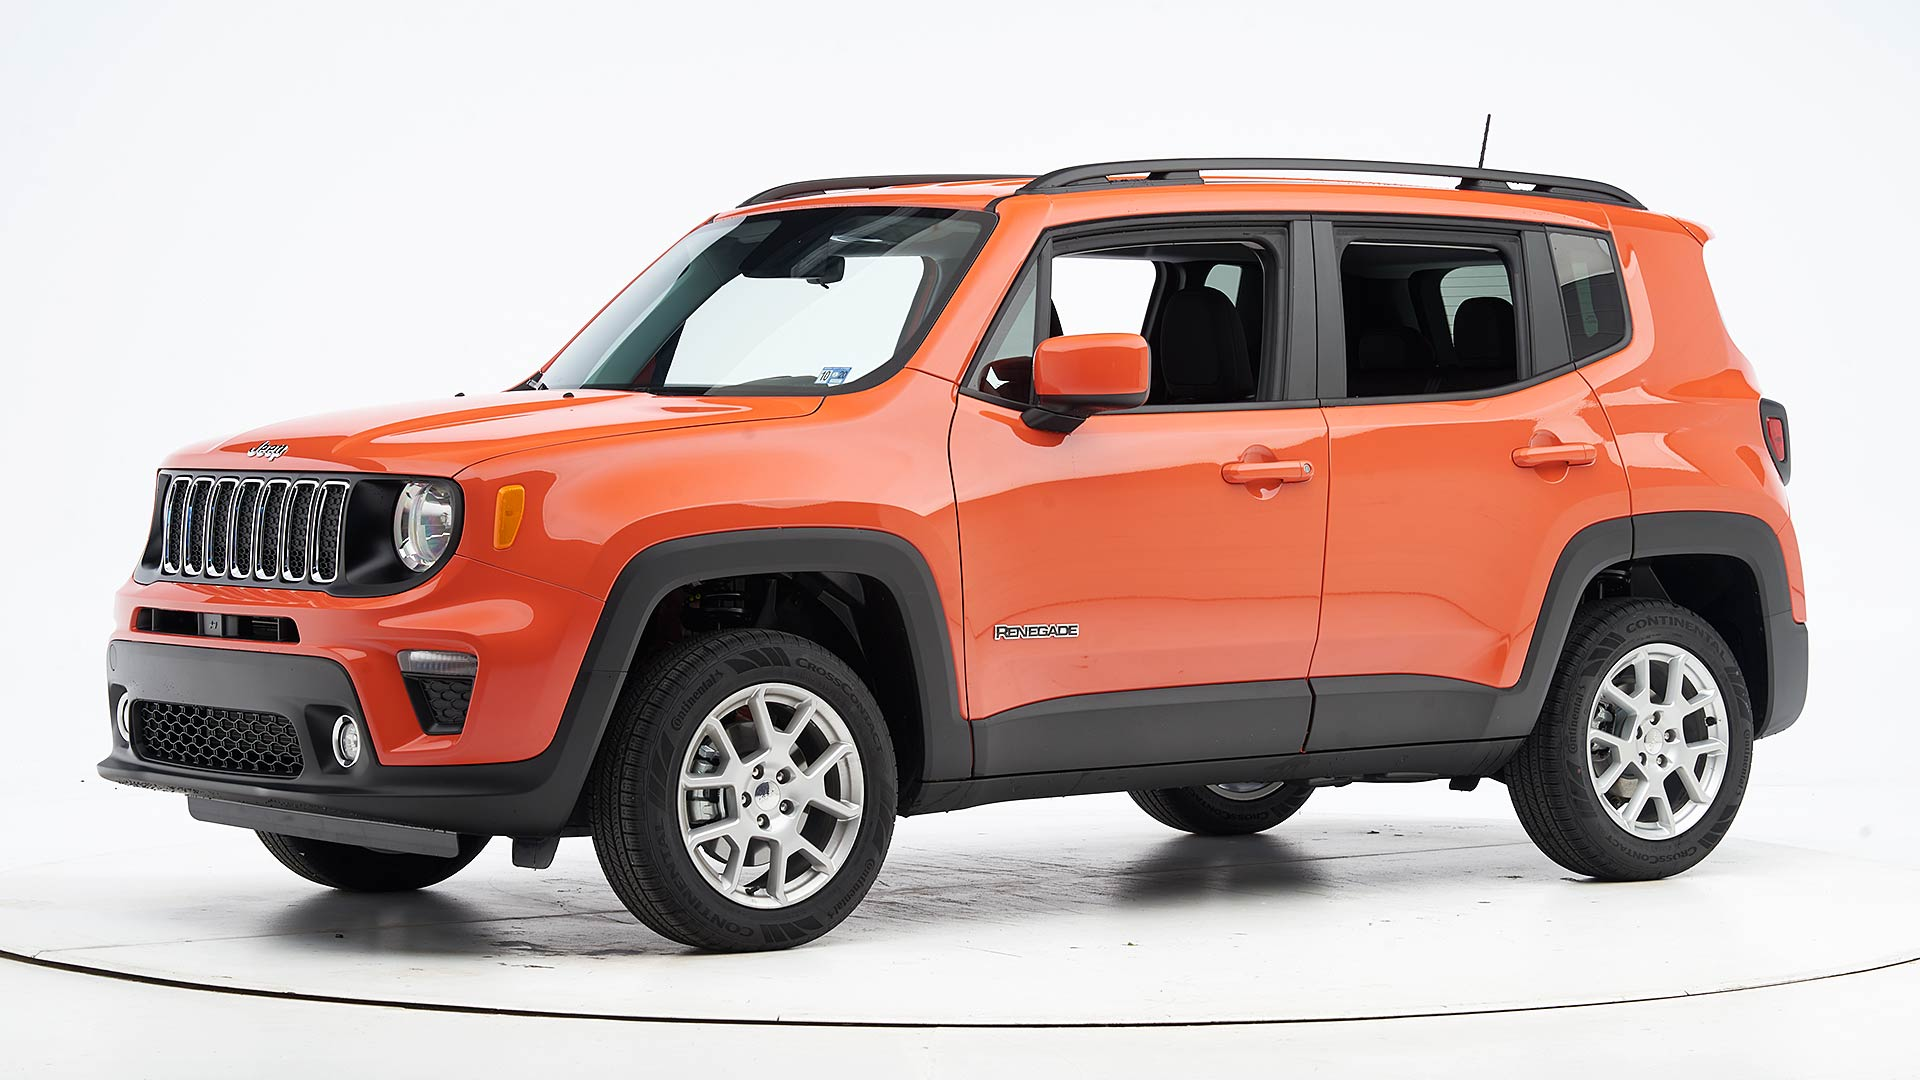 2020 Jeep Renegade 4-door SUV